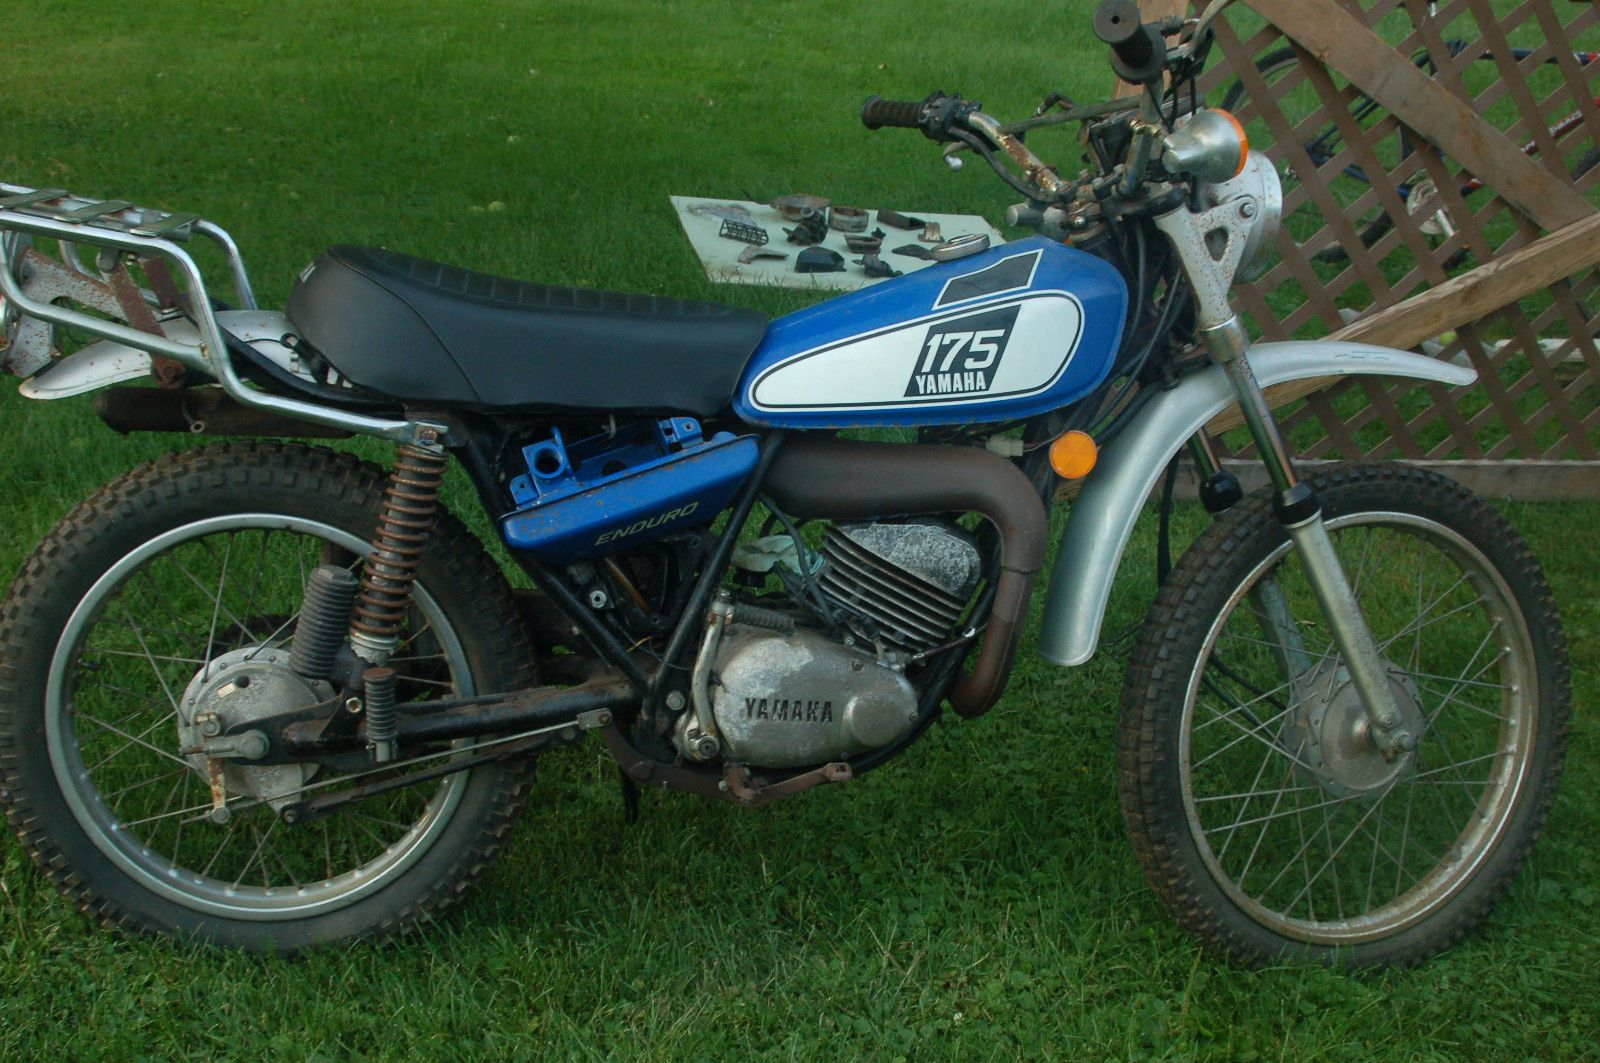 1976 yamaha dt175 enduro parts bike non runner dt rt mx. Black Bedroom Furniture Sets. Home Design Ideas